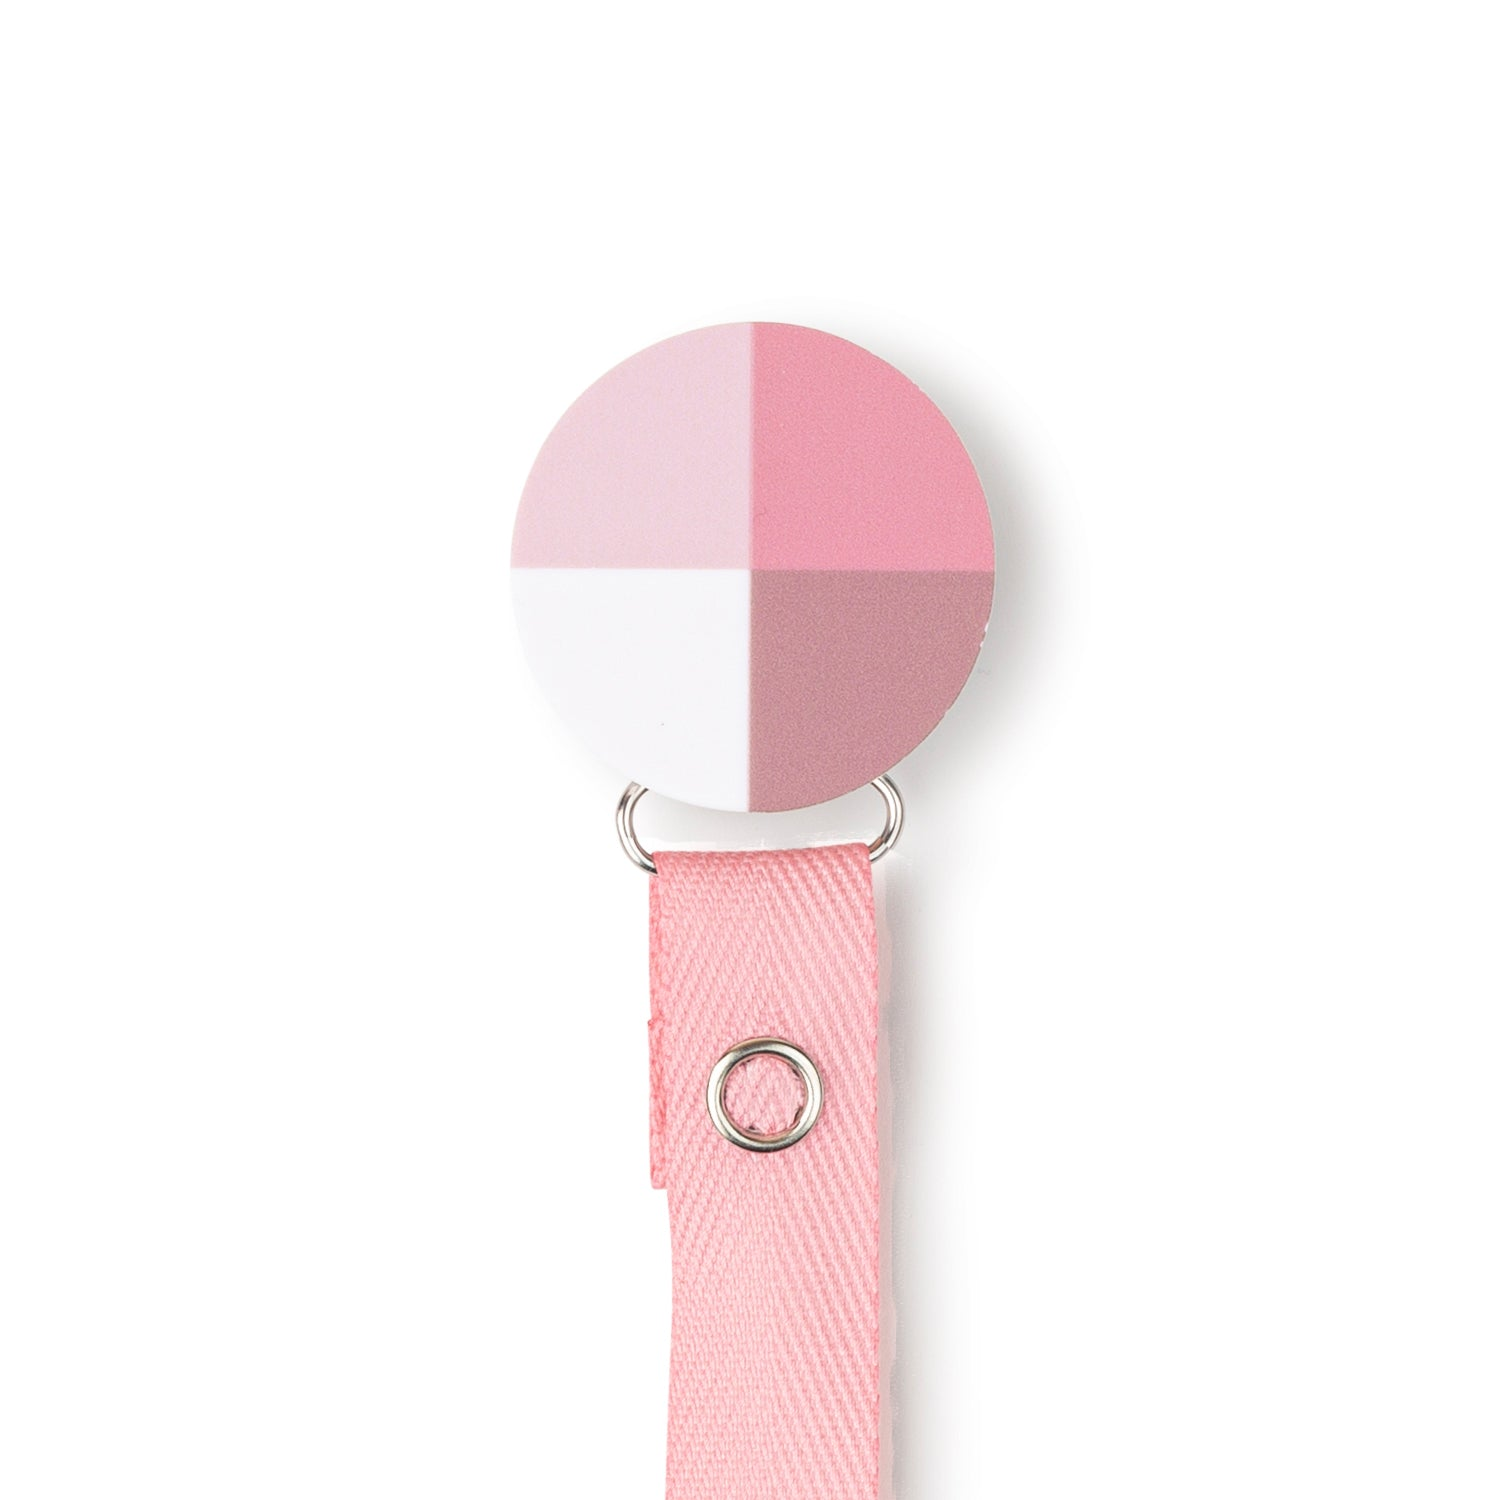 Classy Paci Hues of Pink blush, mauve Colorblock circle pacifier clip